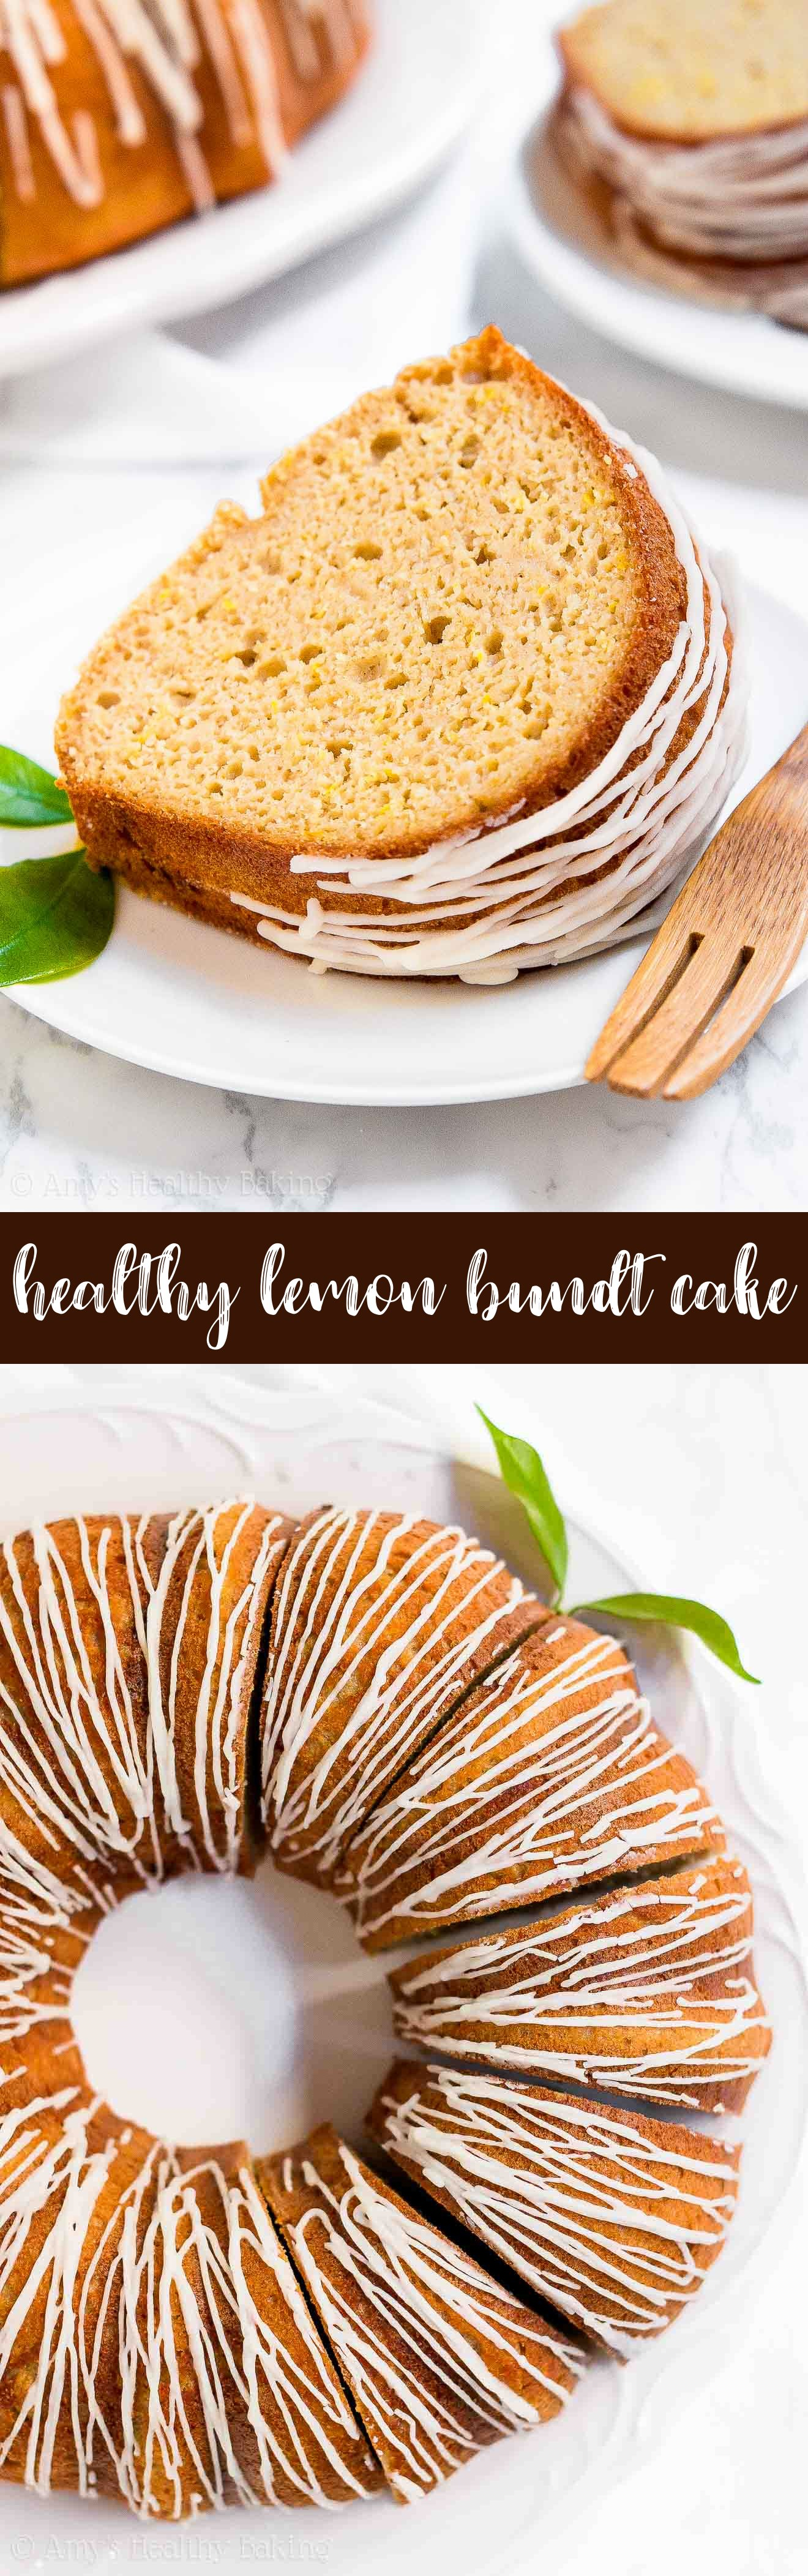 The Absolute Best Healthy Lemon Bundt Cake with Lemon Glaze (from scratch!)